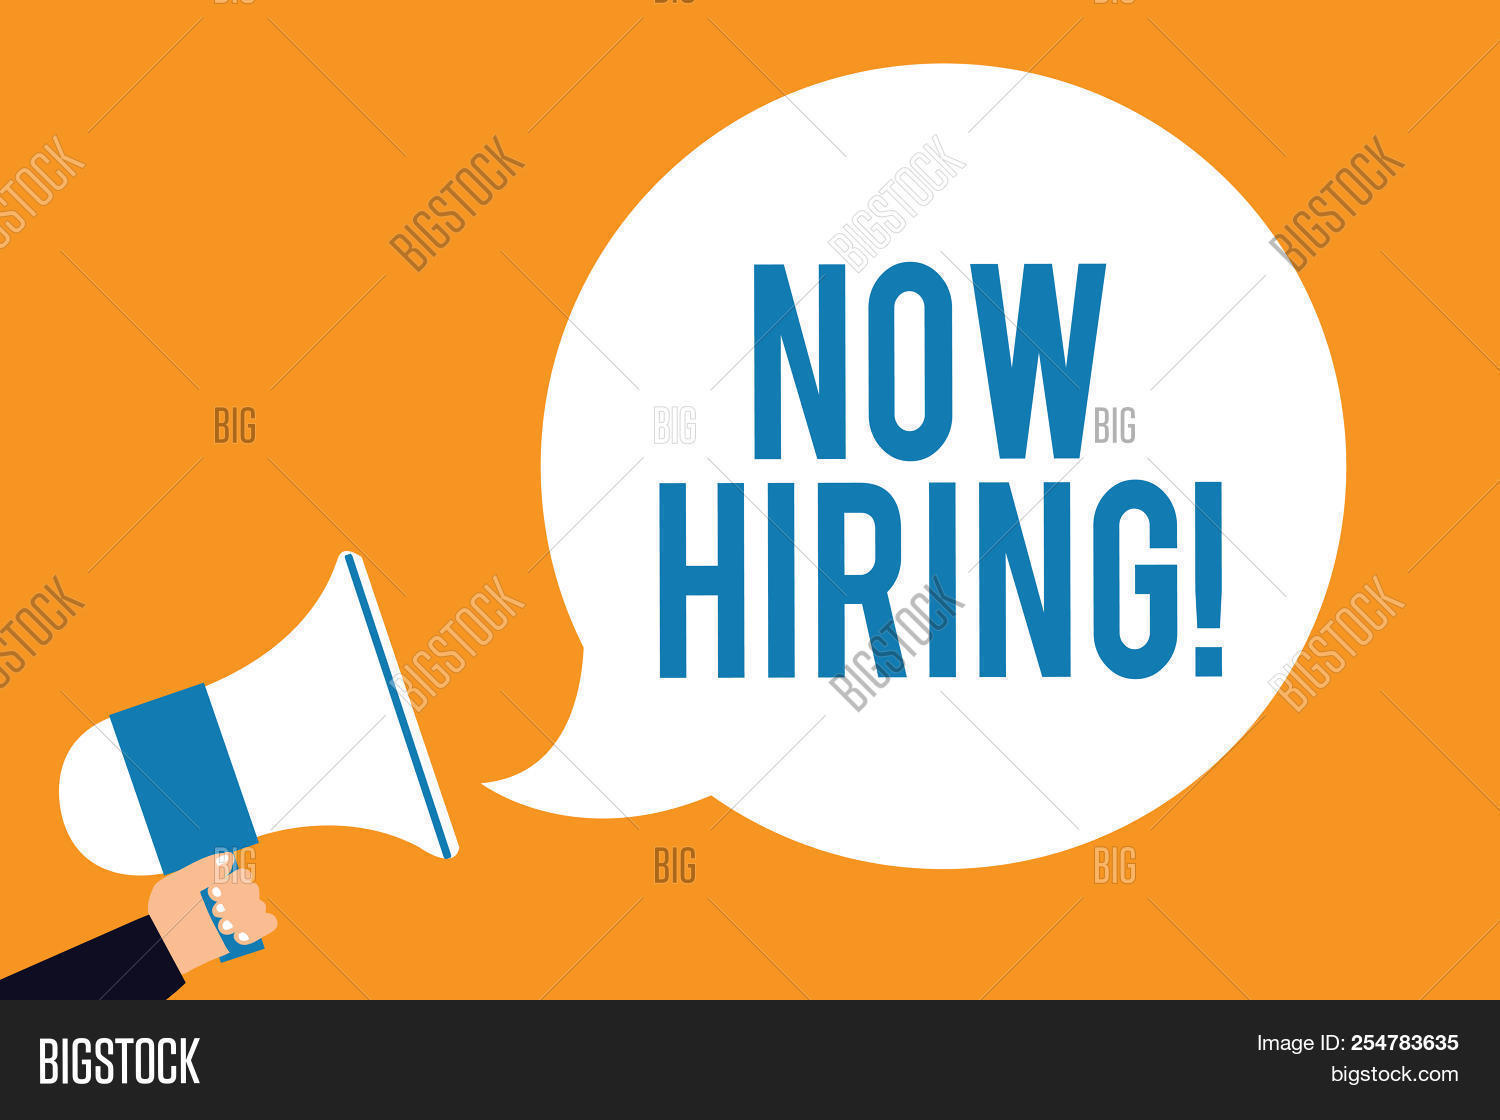 advertisement,advertising,applicant,apply,board,business,businessman,career,communication,employee,employer,employment,help,hire,hired,hiring,human,information,interview,job,join,labour,market,membership,now,opportunity,personnel,proccess,process,recruit,recruiter,recruiting,recruitment,reflection,register,resources,search,success,team,unemployed,unemployment,urgency,want,wanted,work,worker,workforce